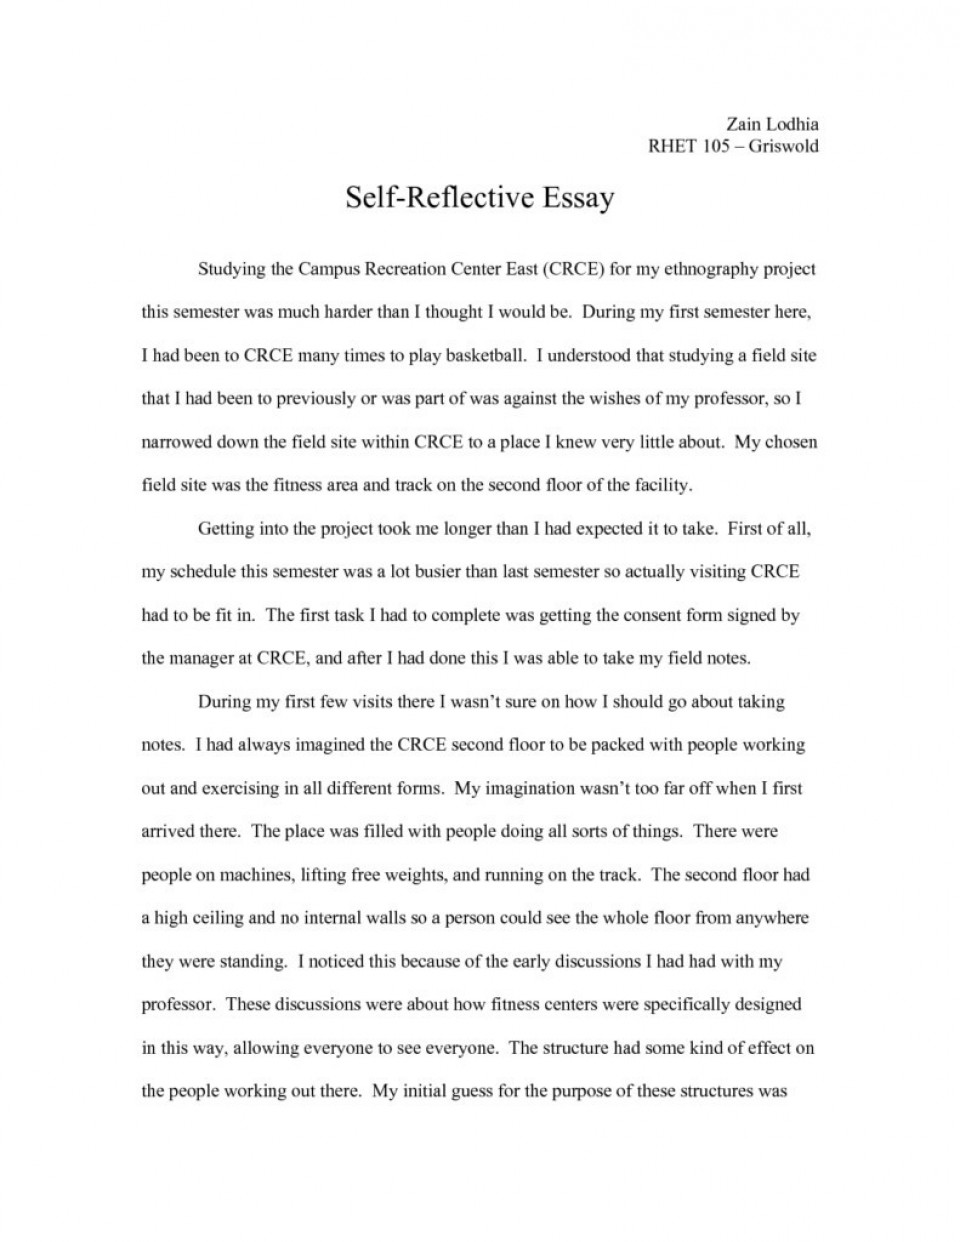 018 First Day In College Essay Sample Business School Essays Toreto Co Of Narrative My High English Hindi Descriptive Nepali Urdu Language Marathi Junior At Quotations Magnificent Pdf 960